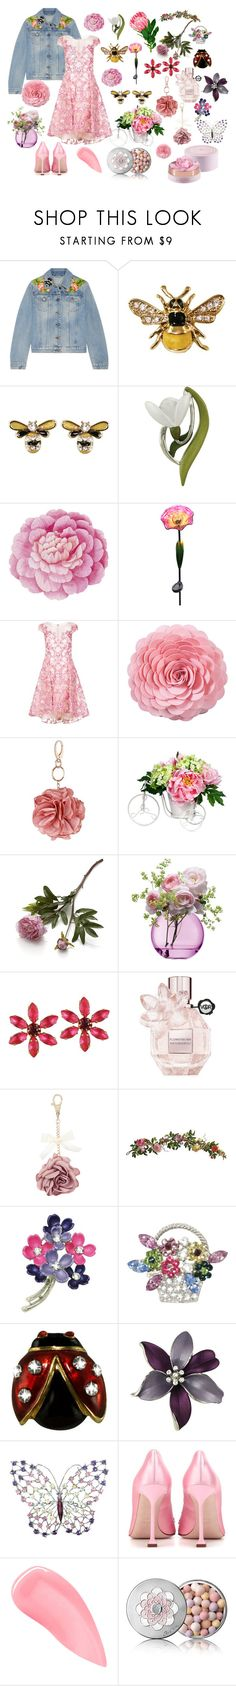 """""""In the Garden"""" by eternal-collection on Polyvore featuring Gucci, Ballard Designs, Alpine, Notte by Marchesa, Saro, Miss Selfridge, Nearly Natural, Crate and Barrel, LSA International and Viktor & Rolf"""